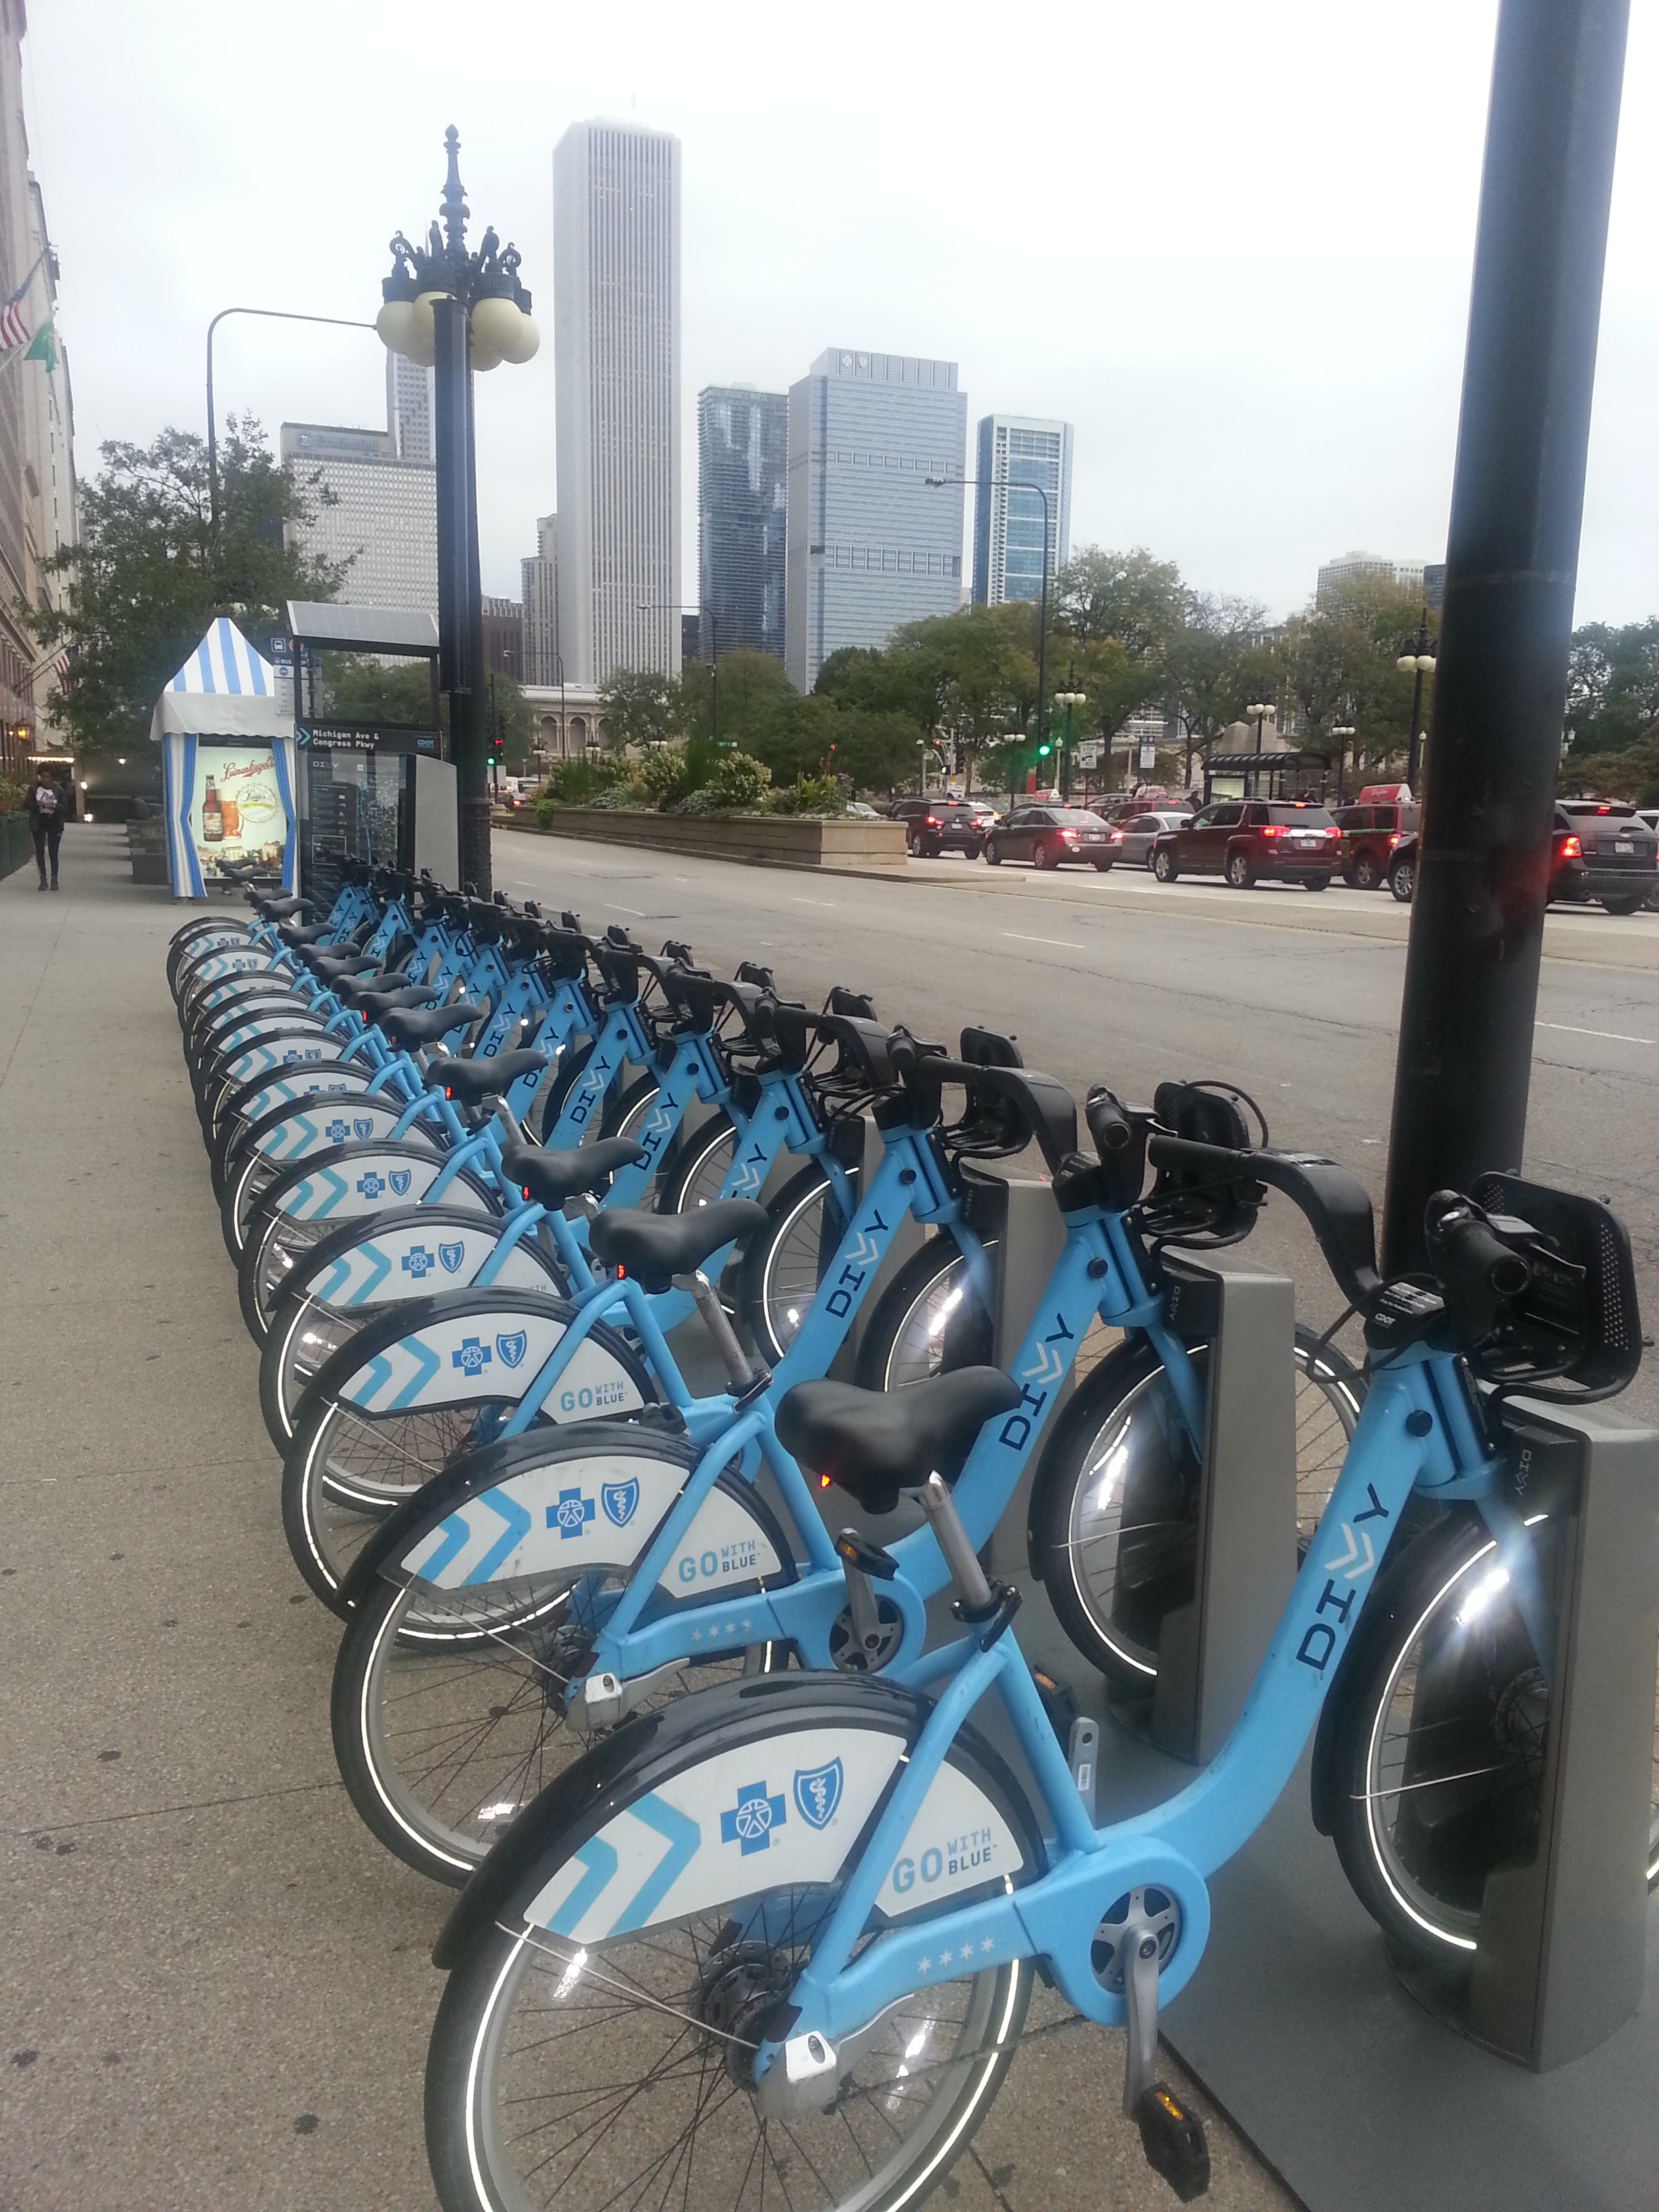 Divvy bike share is spreading from Chicago to Oak Park and Evanston bringing shared use mobility to urban and suburban residents. (Photo: M. Zimmerman, Sept 2015).